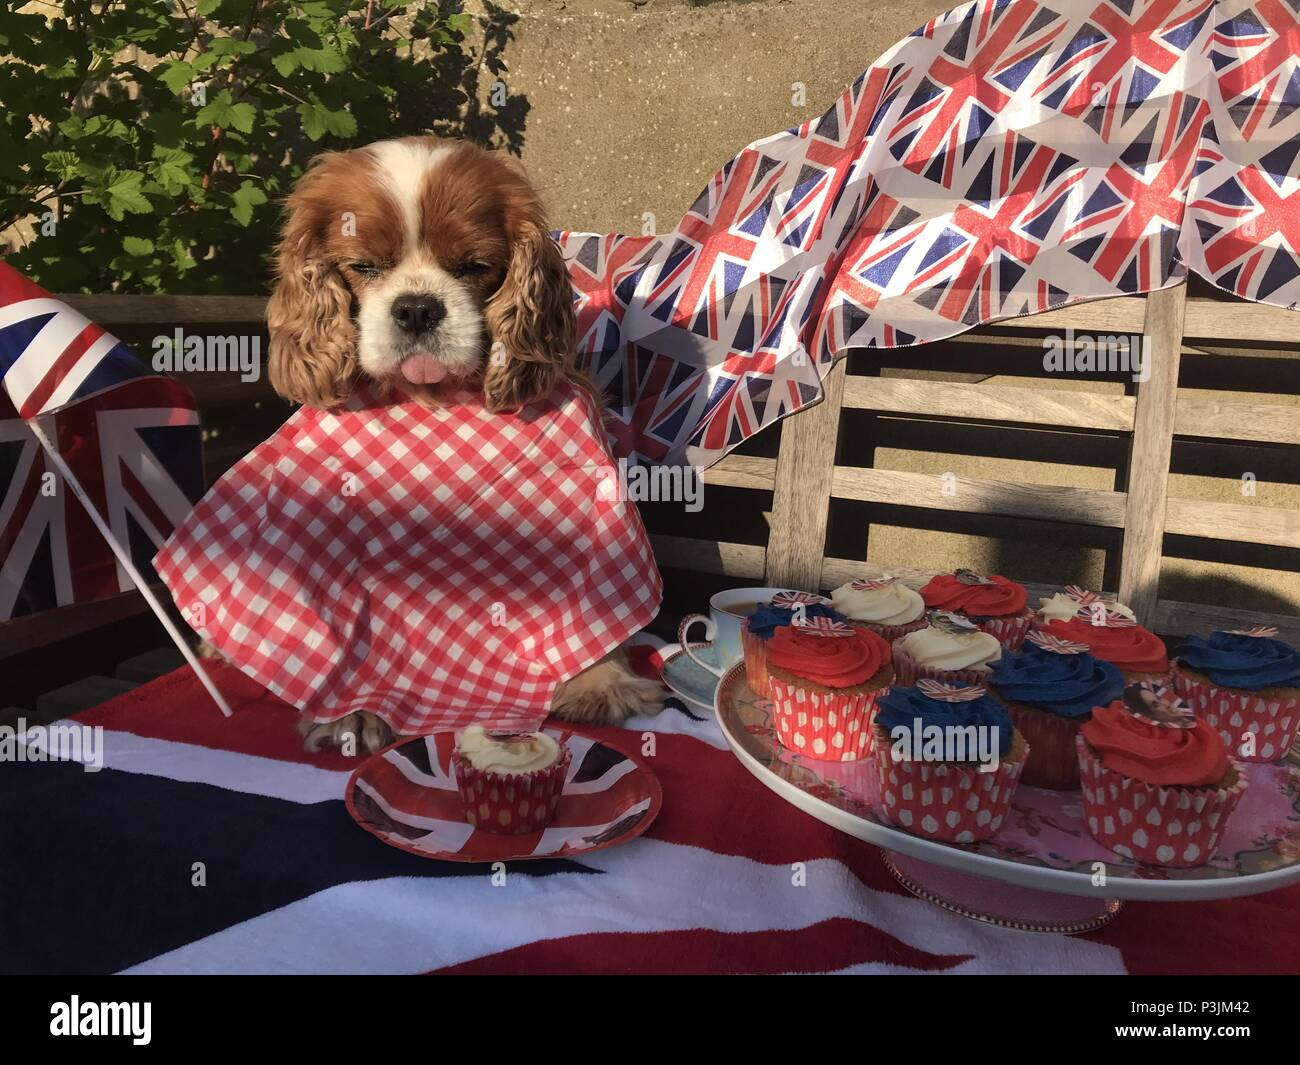 As people up and down the UK prepare for Royal Wedding street parties, it's not just humans who will be celebrating. These two dogs are already enjoying the festivities with a cheeky royal cupcake or two...  Featuring: atmosphere Where: United Kingdom When: 18 May 2018 Credit: WENN.com - Stock Image